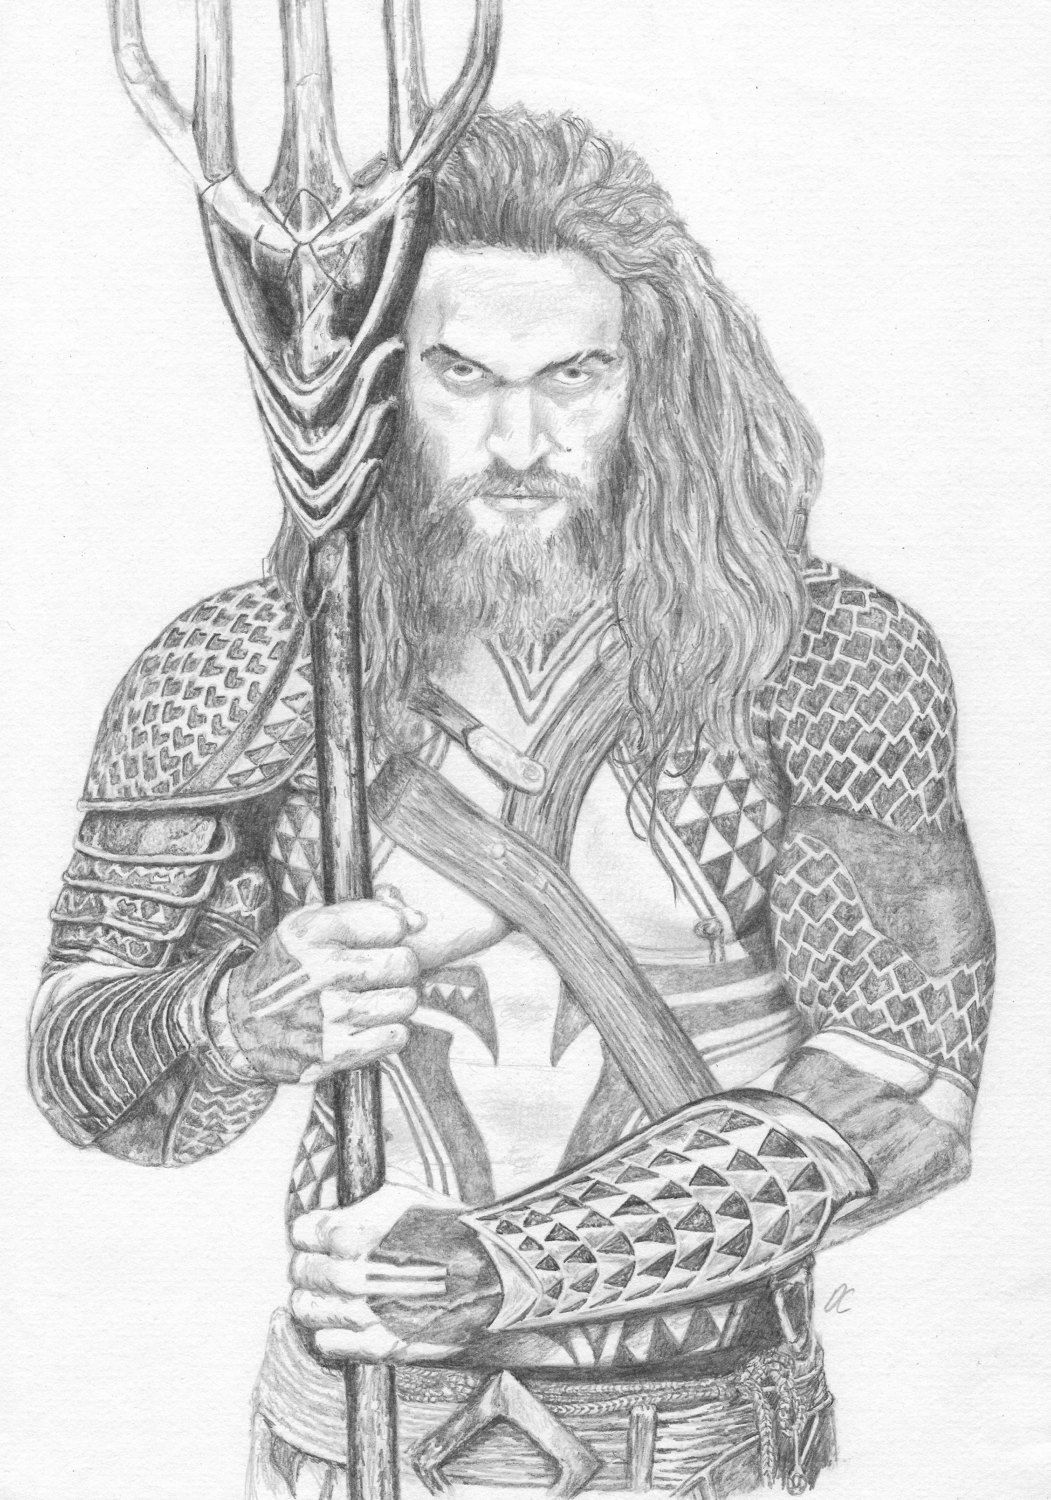 Aqua Man - Pencile Drawing - The Justice League - Fan Art Print By Iamdwaine On Etsy | Comics In ...